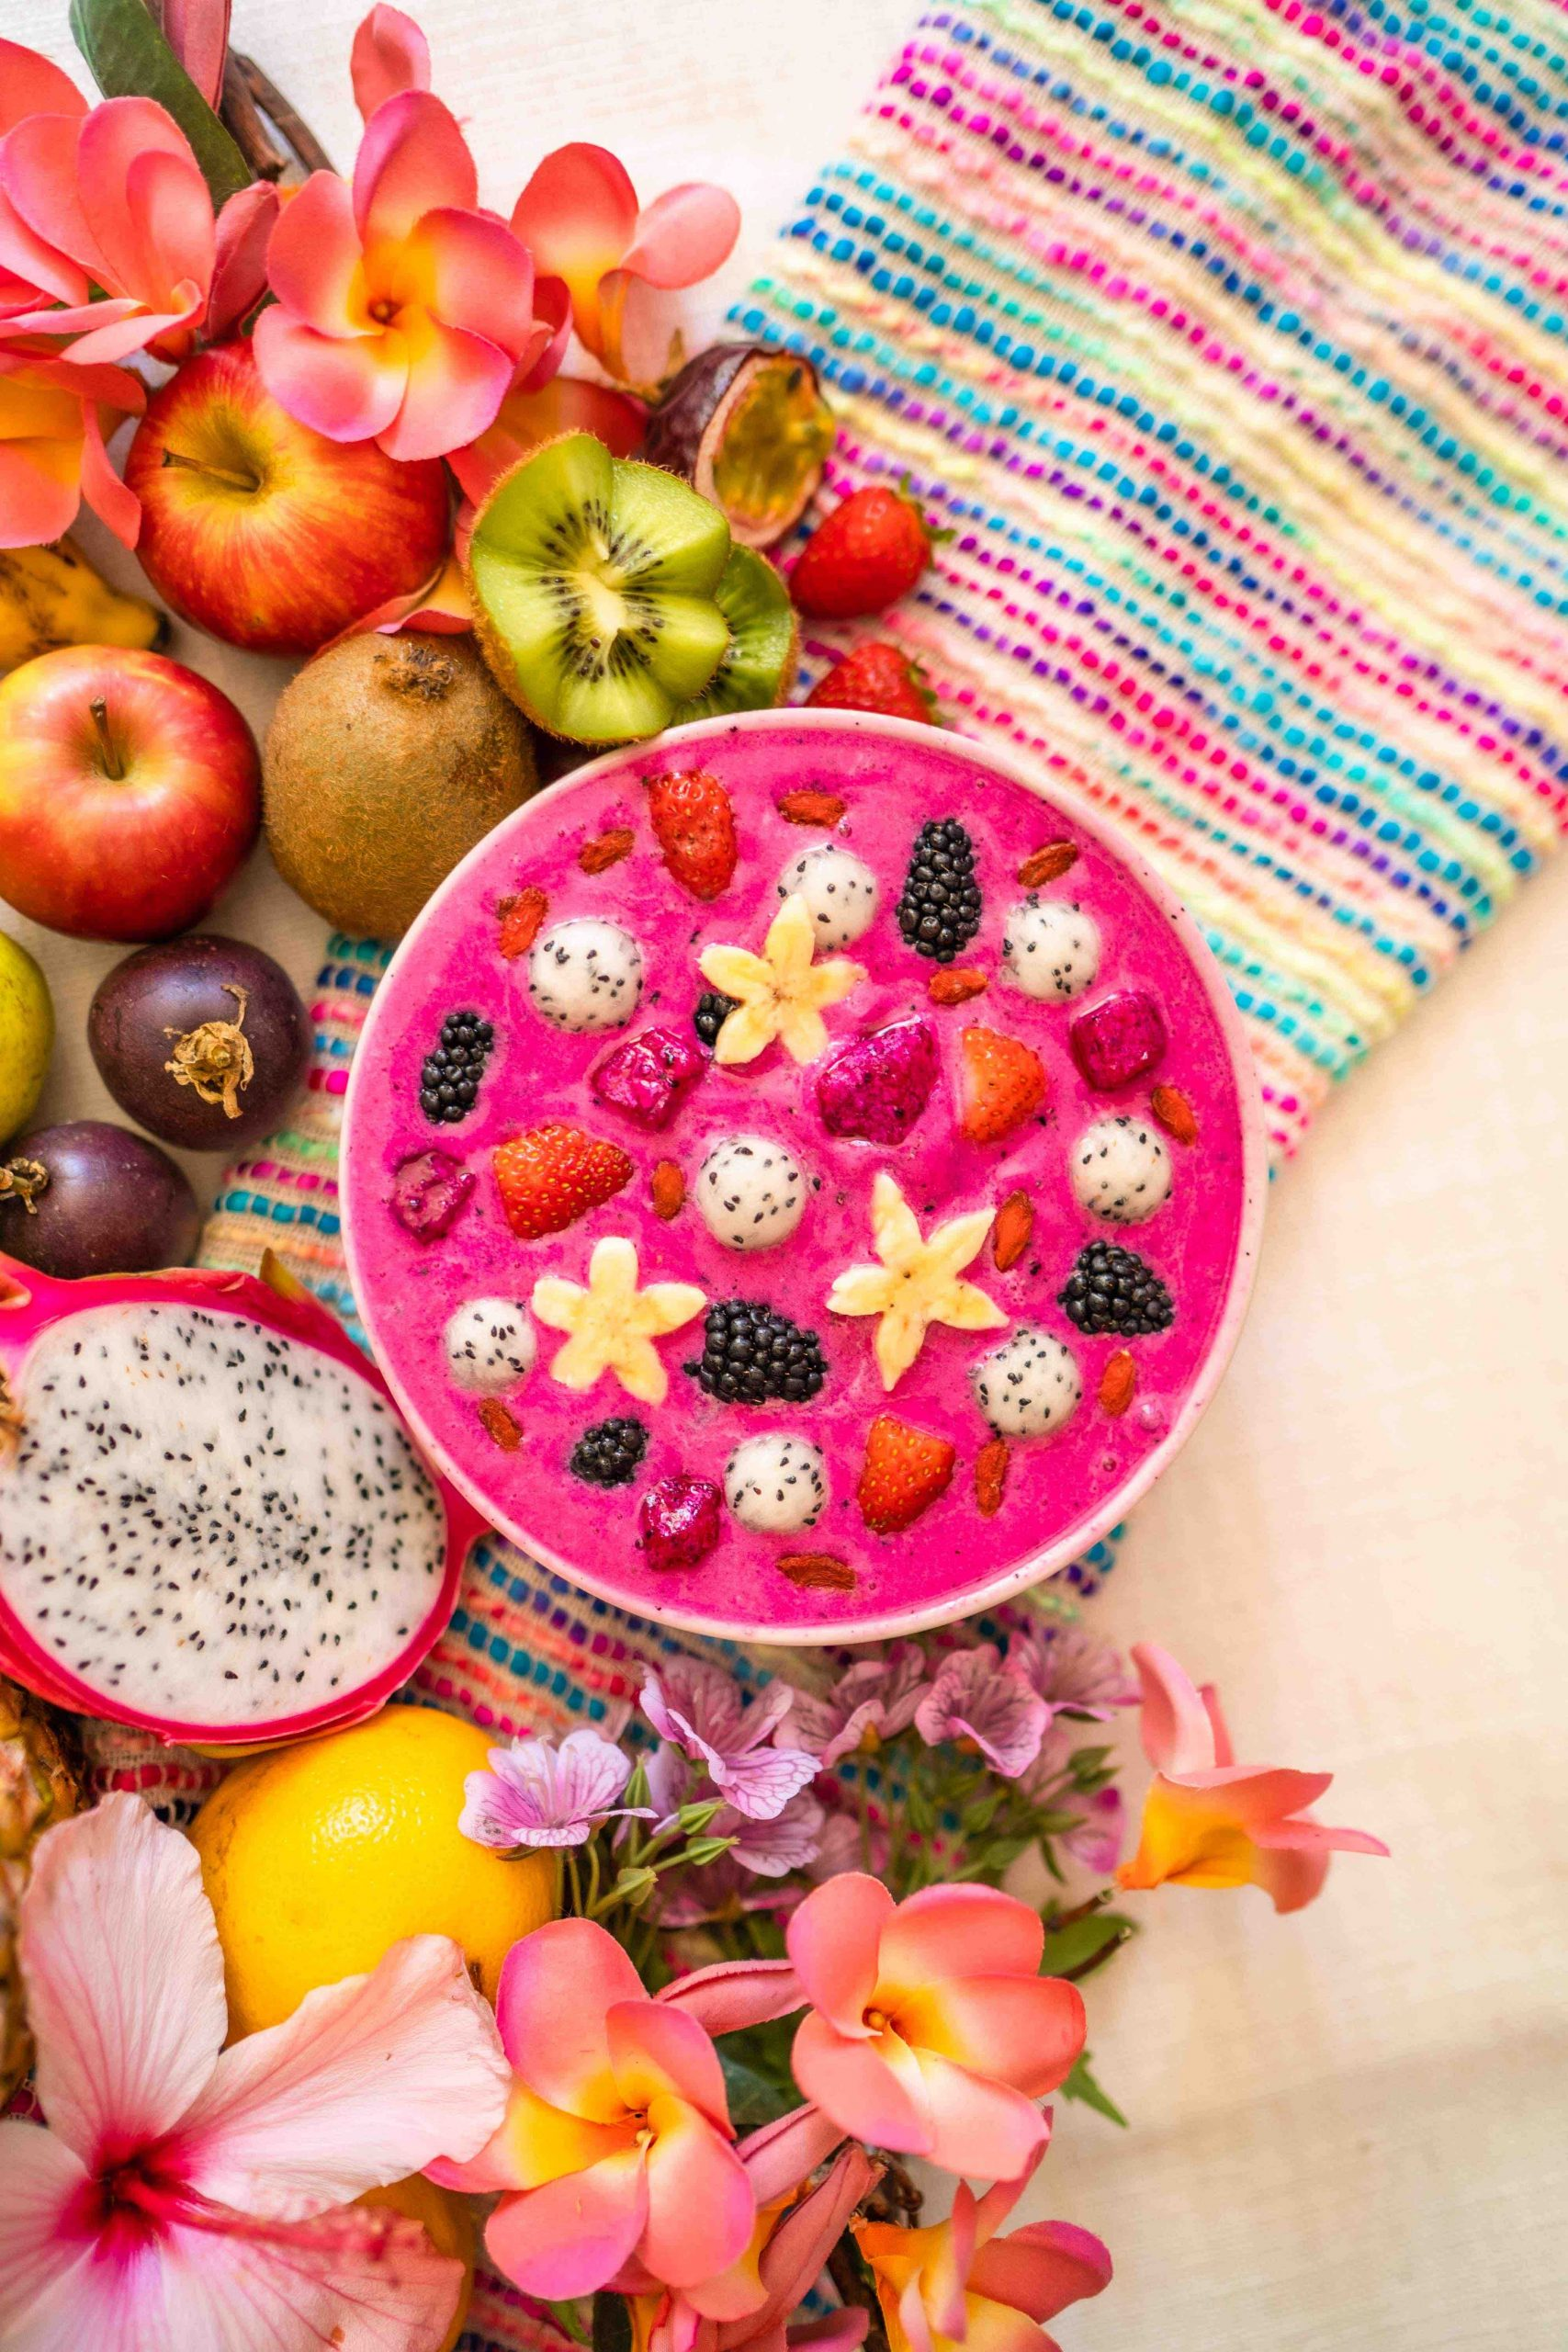 food photography and styling